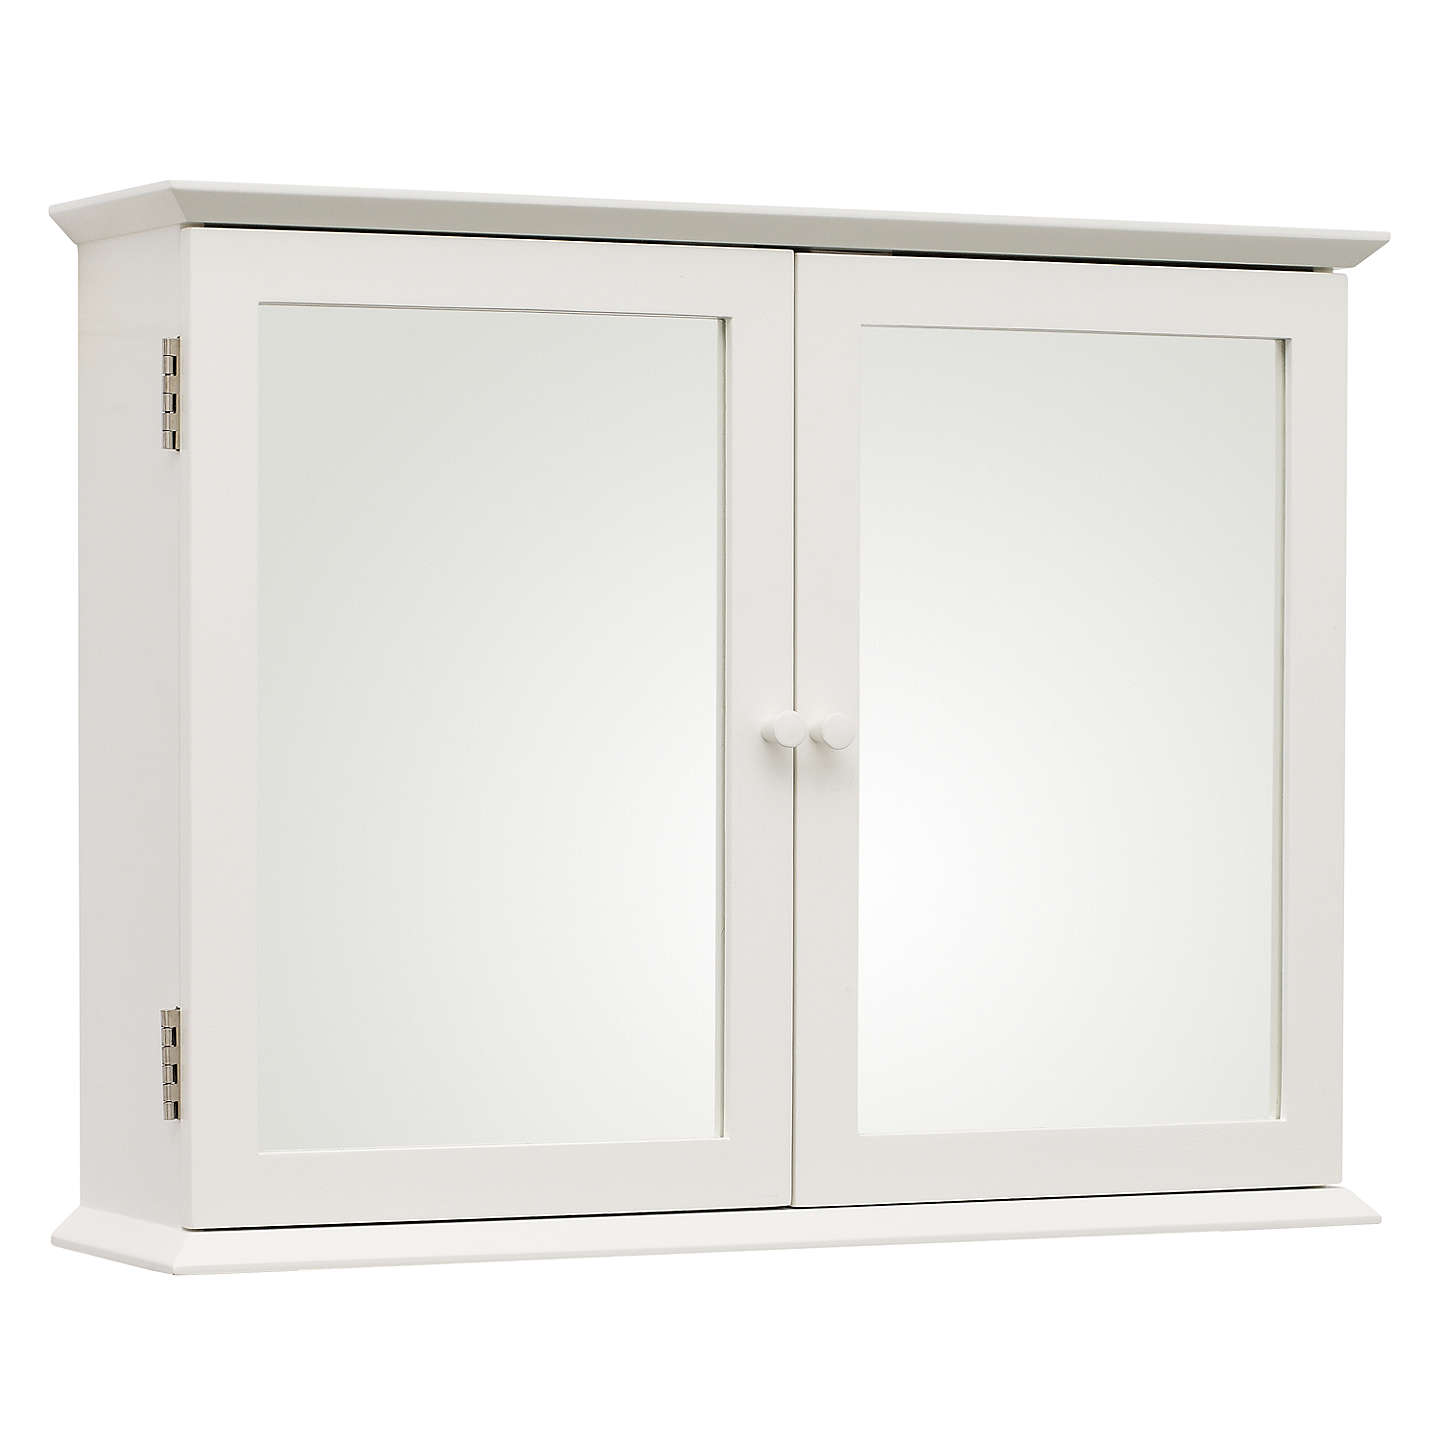 John lewis st ives double mirrored bathroom cabinet at for Bathroom cabinets john lewis uk